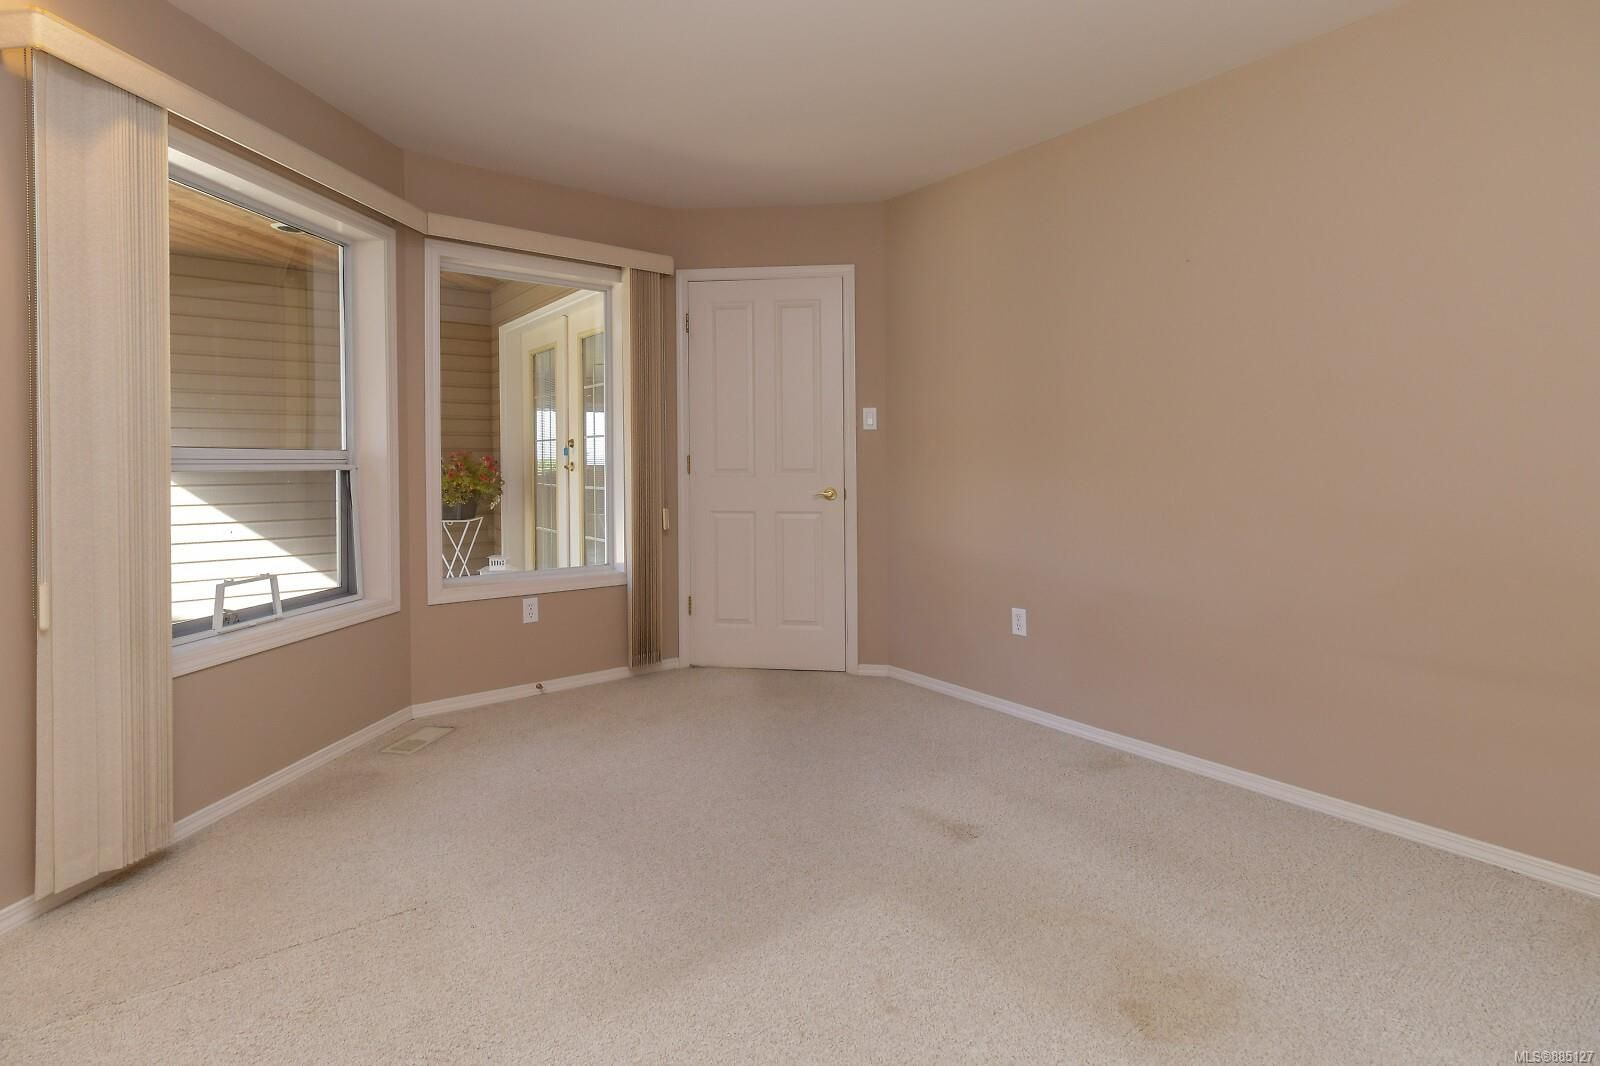 Photo 37: Photos: 26 529 Johnstone Rd in : PQ French Creek Row/Townhouse for sale (Parksville/Qualicum)  : MLS®# 885127